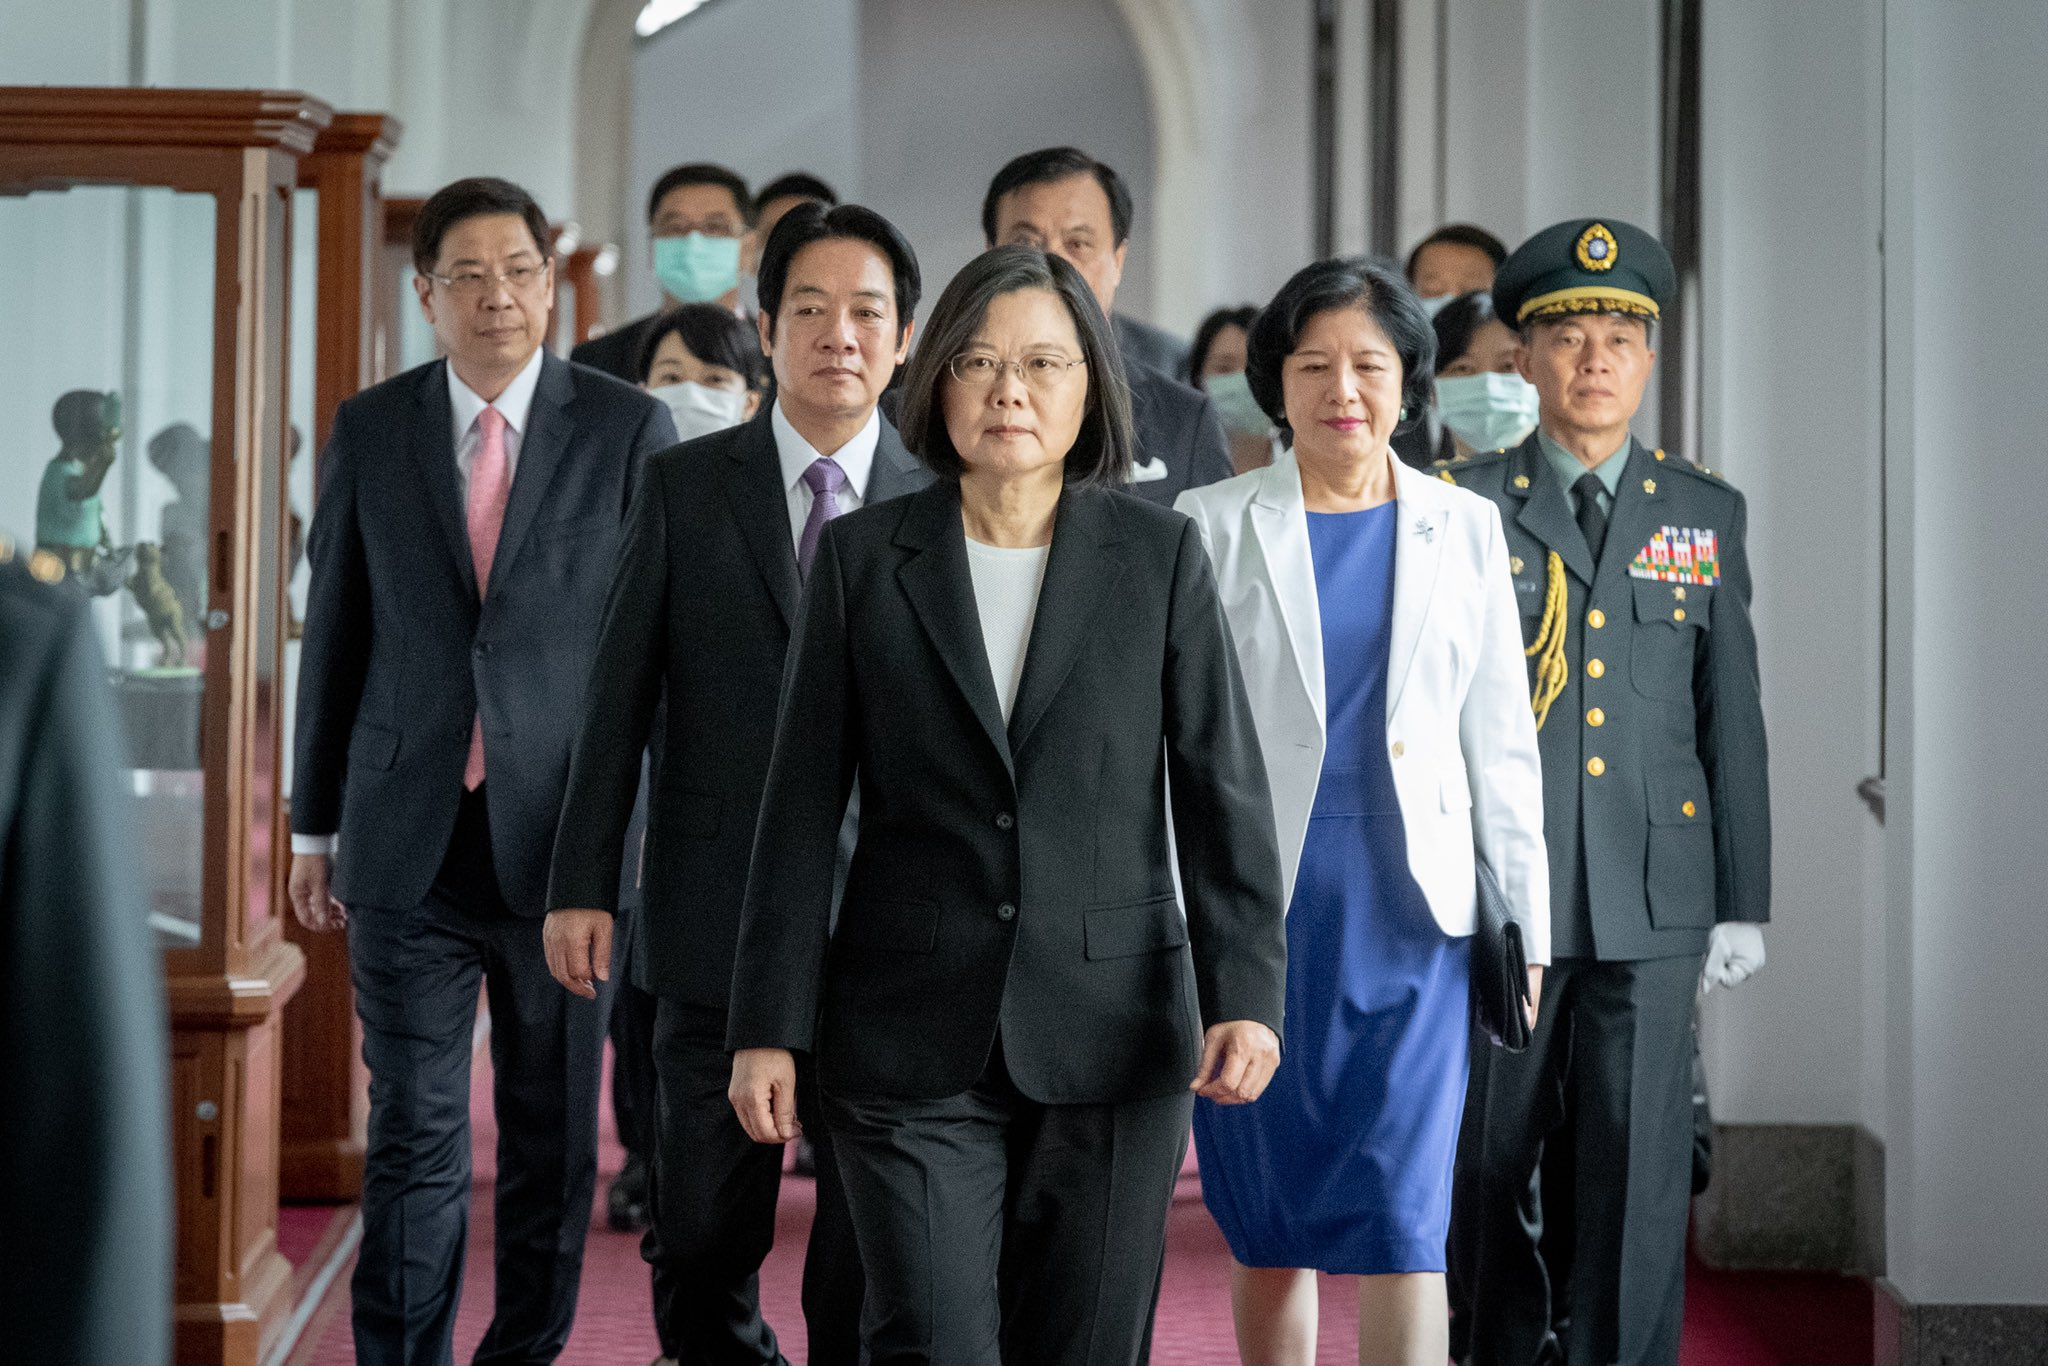 The Presidential Inauguration of Tsai Ing-wen